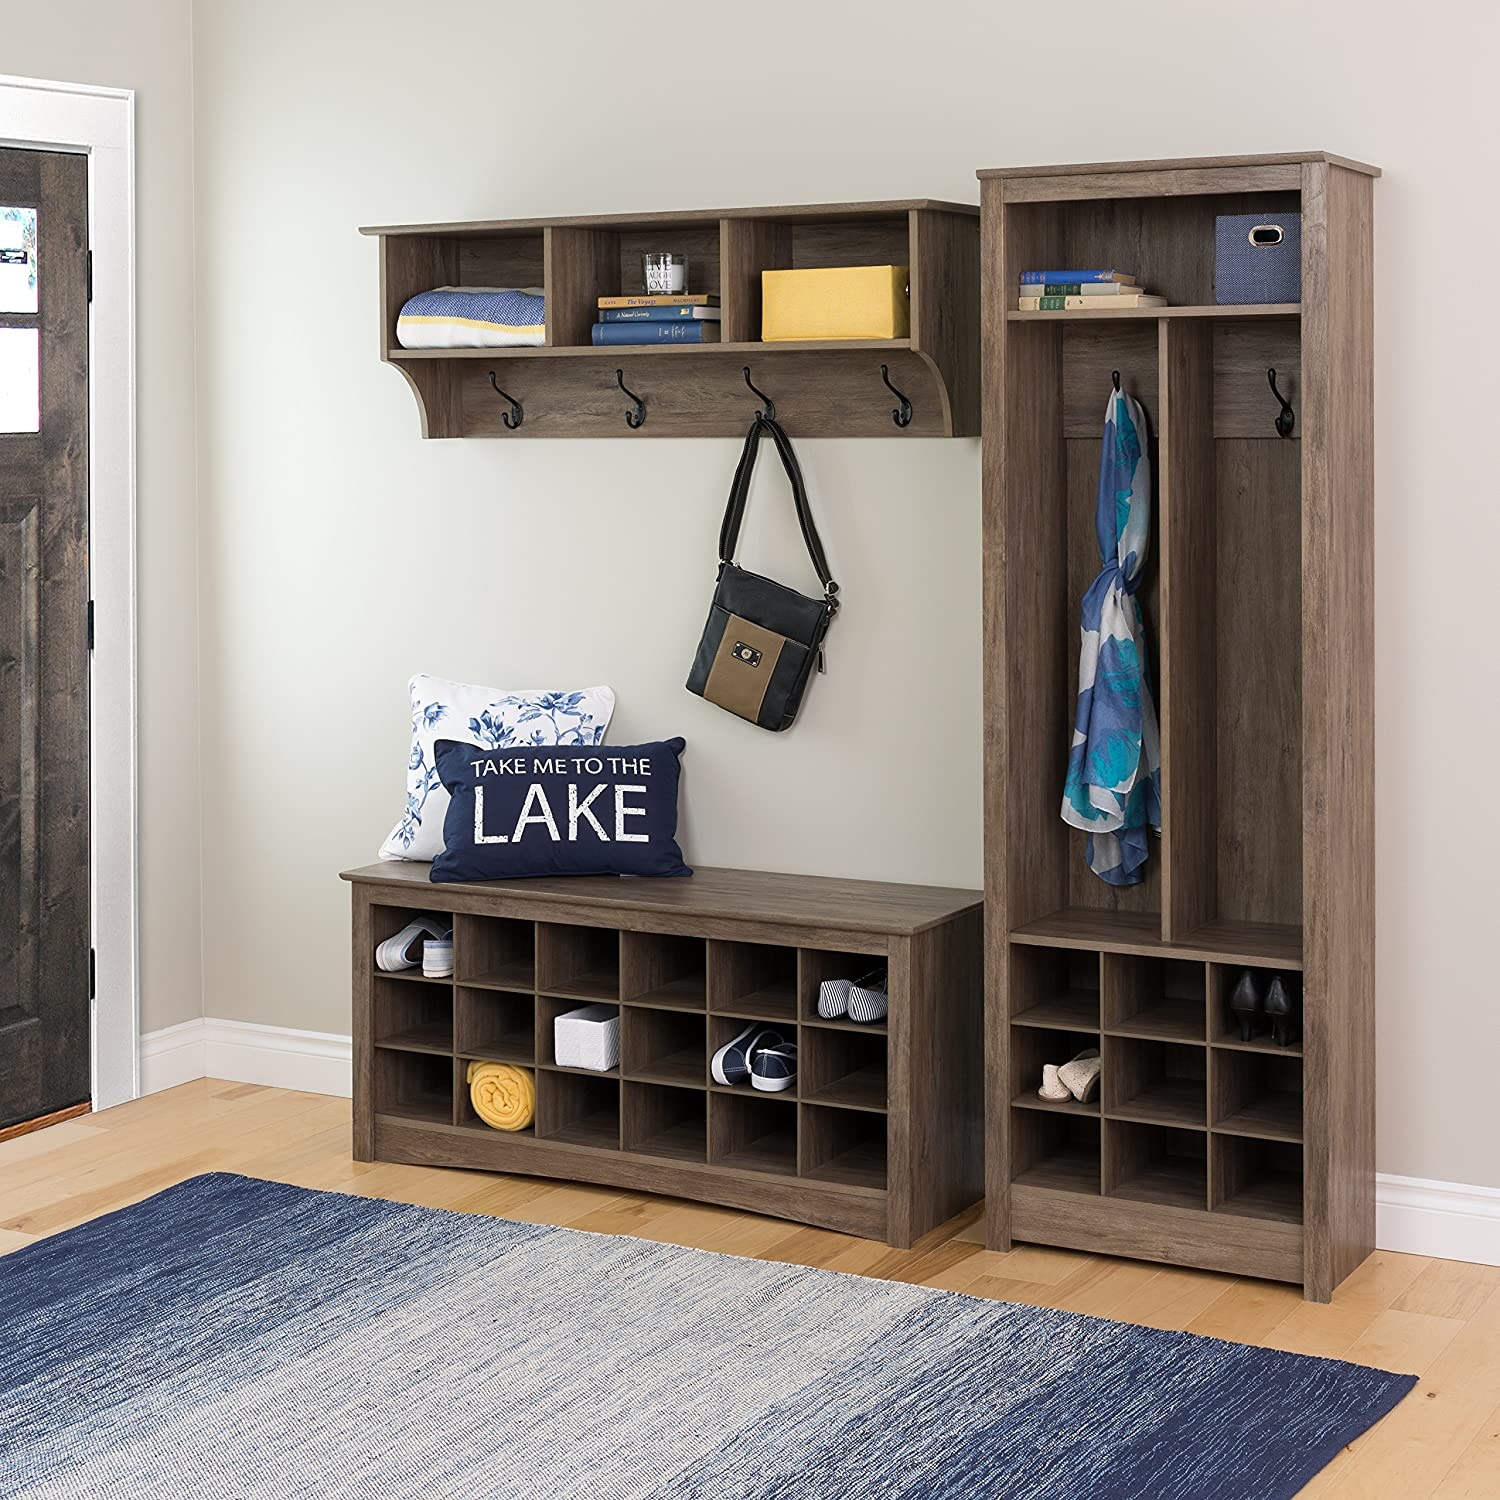 garden laminate shipping bench vito today home furniture free shore cubby product overstock wood south storage